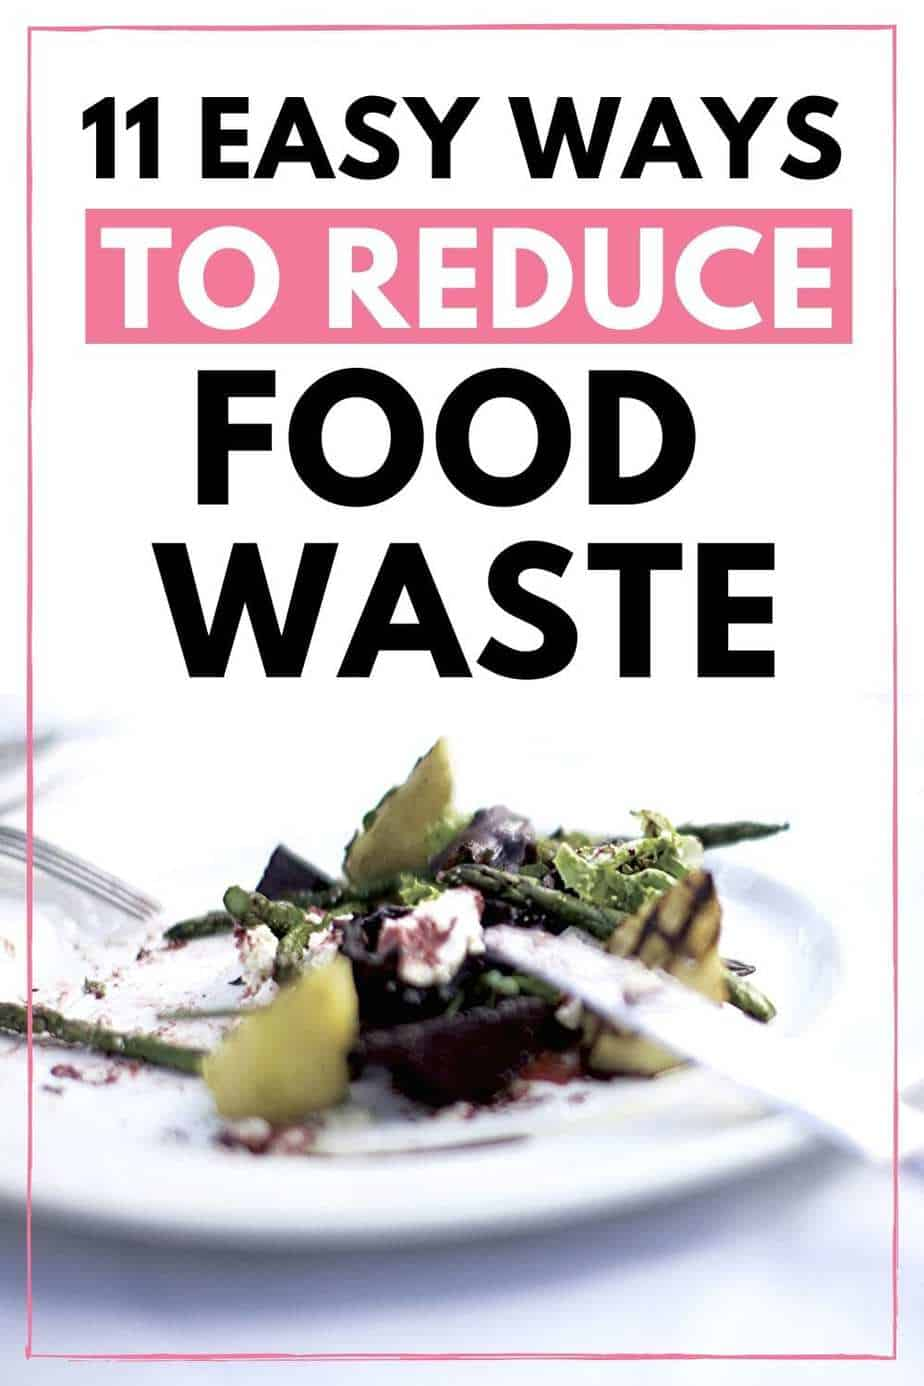 11 easy ways to reduce food waste